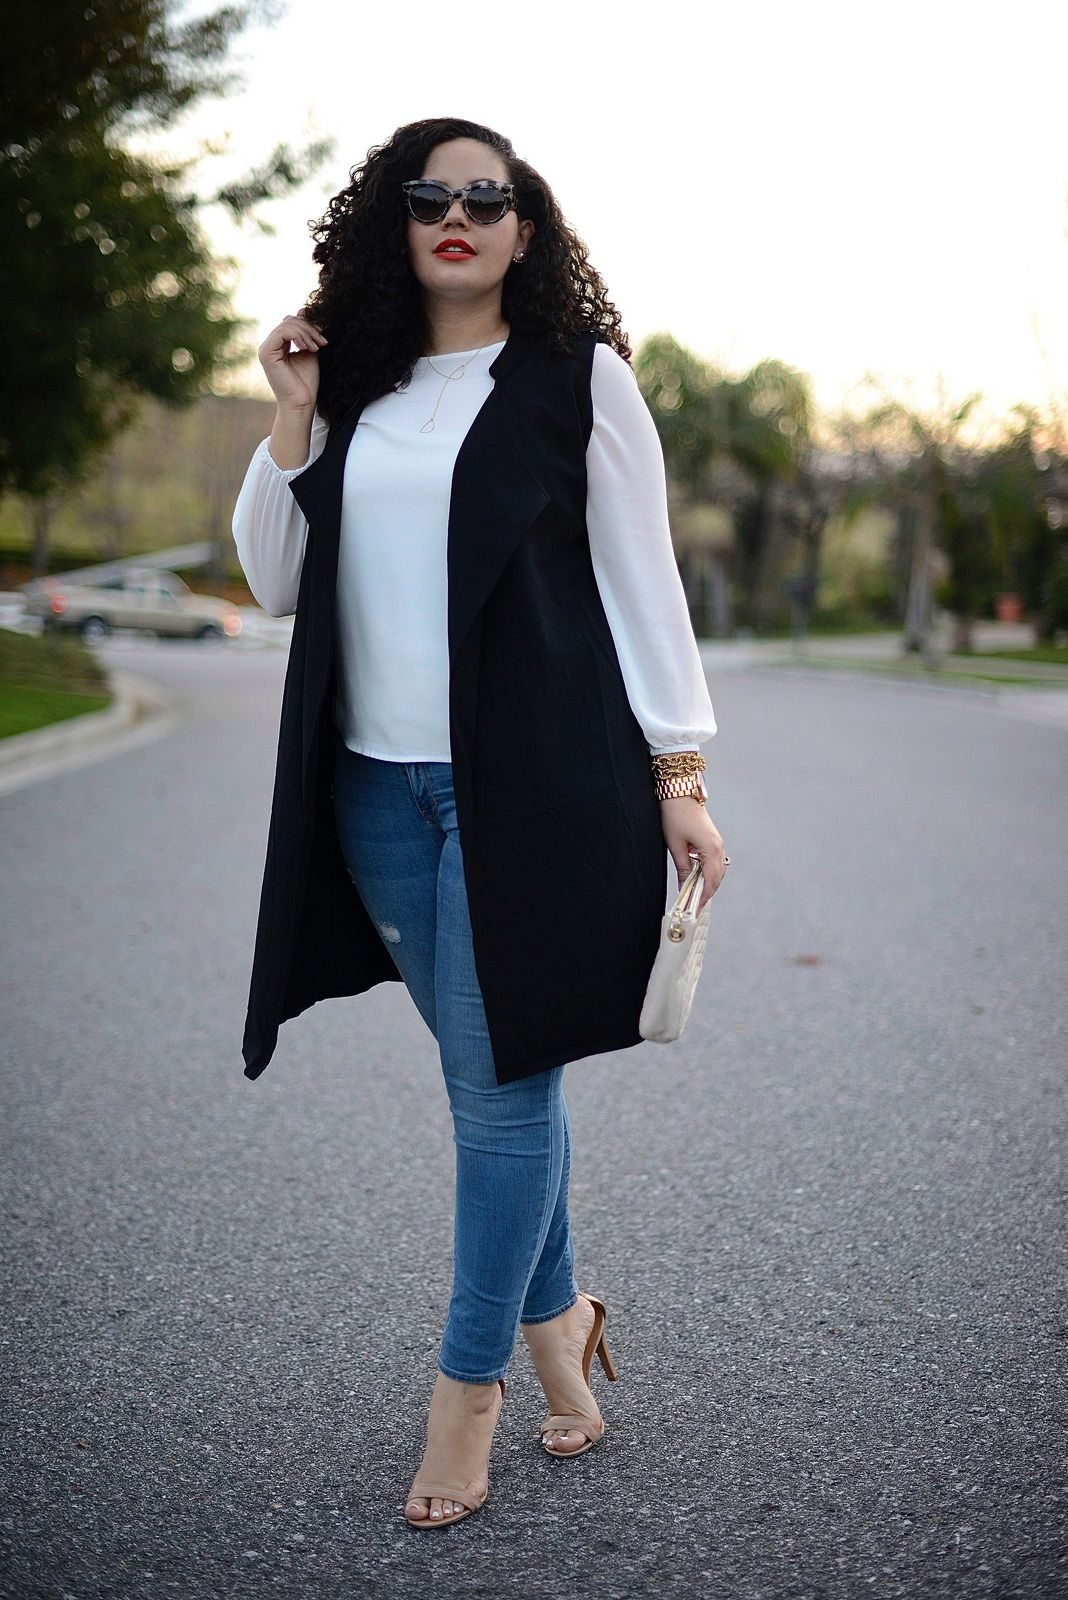 "Foto: Reprodução / <a href=""http://girlwithcurves.com/post/107869872012/sleeveless-jacket"" target=""_blank"">Girl with curves</a>"